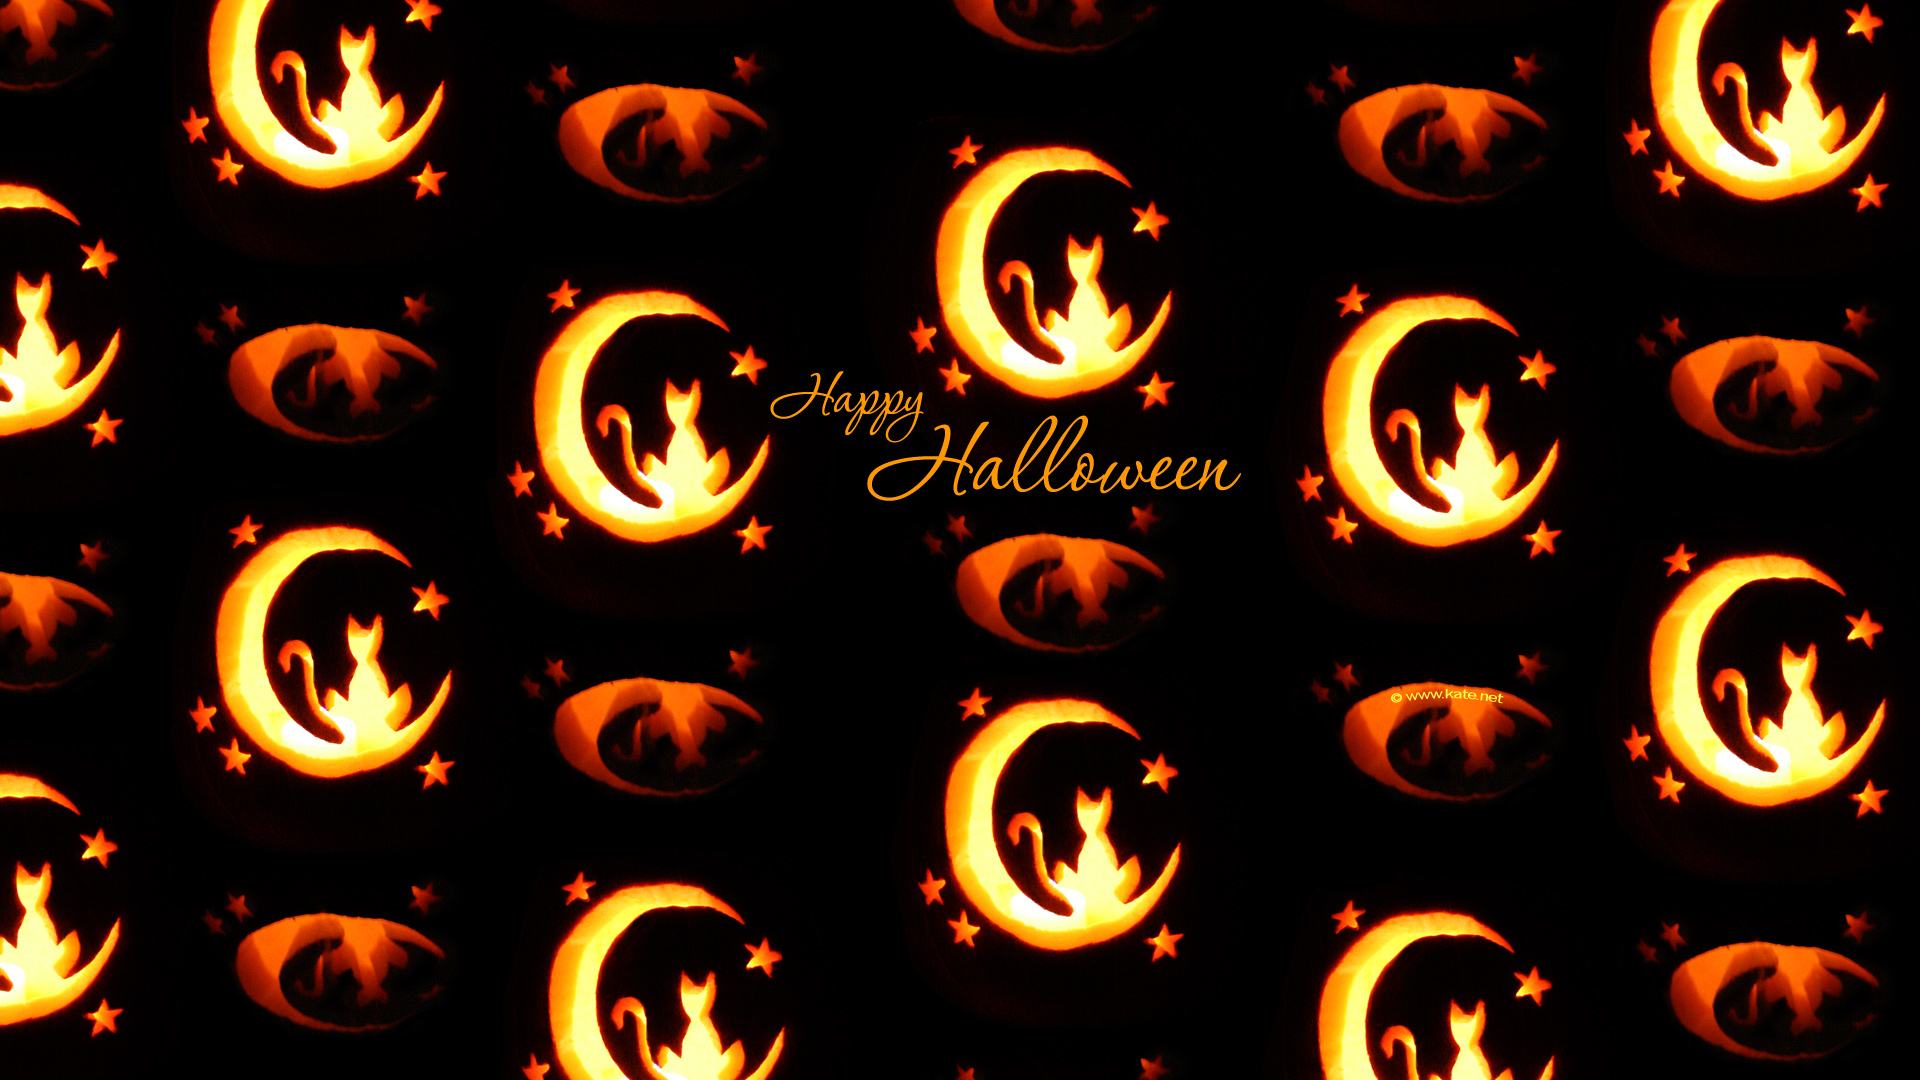 Halloween Wallpapers Wallpapers High Quality Download 1920x1080